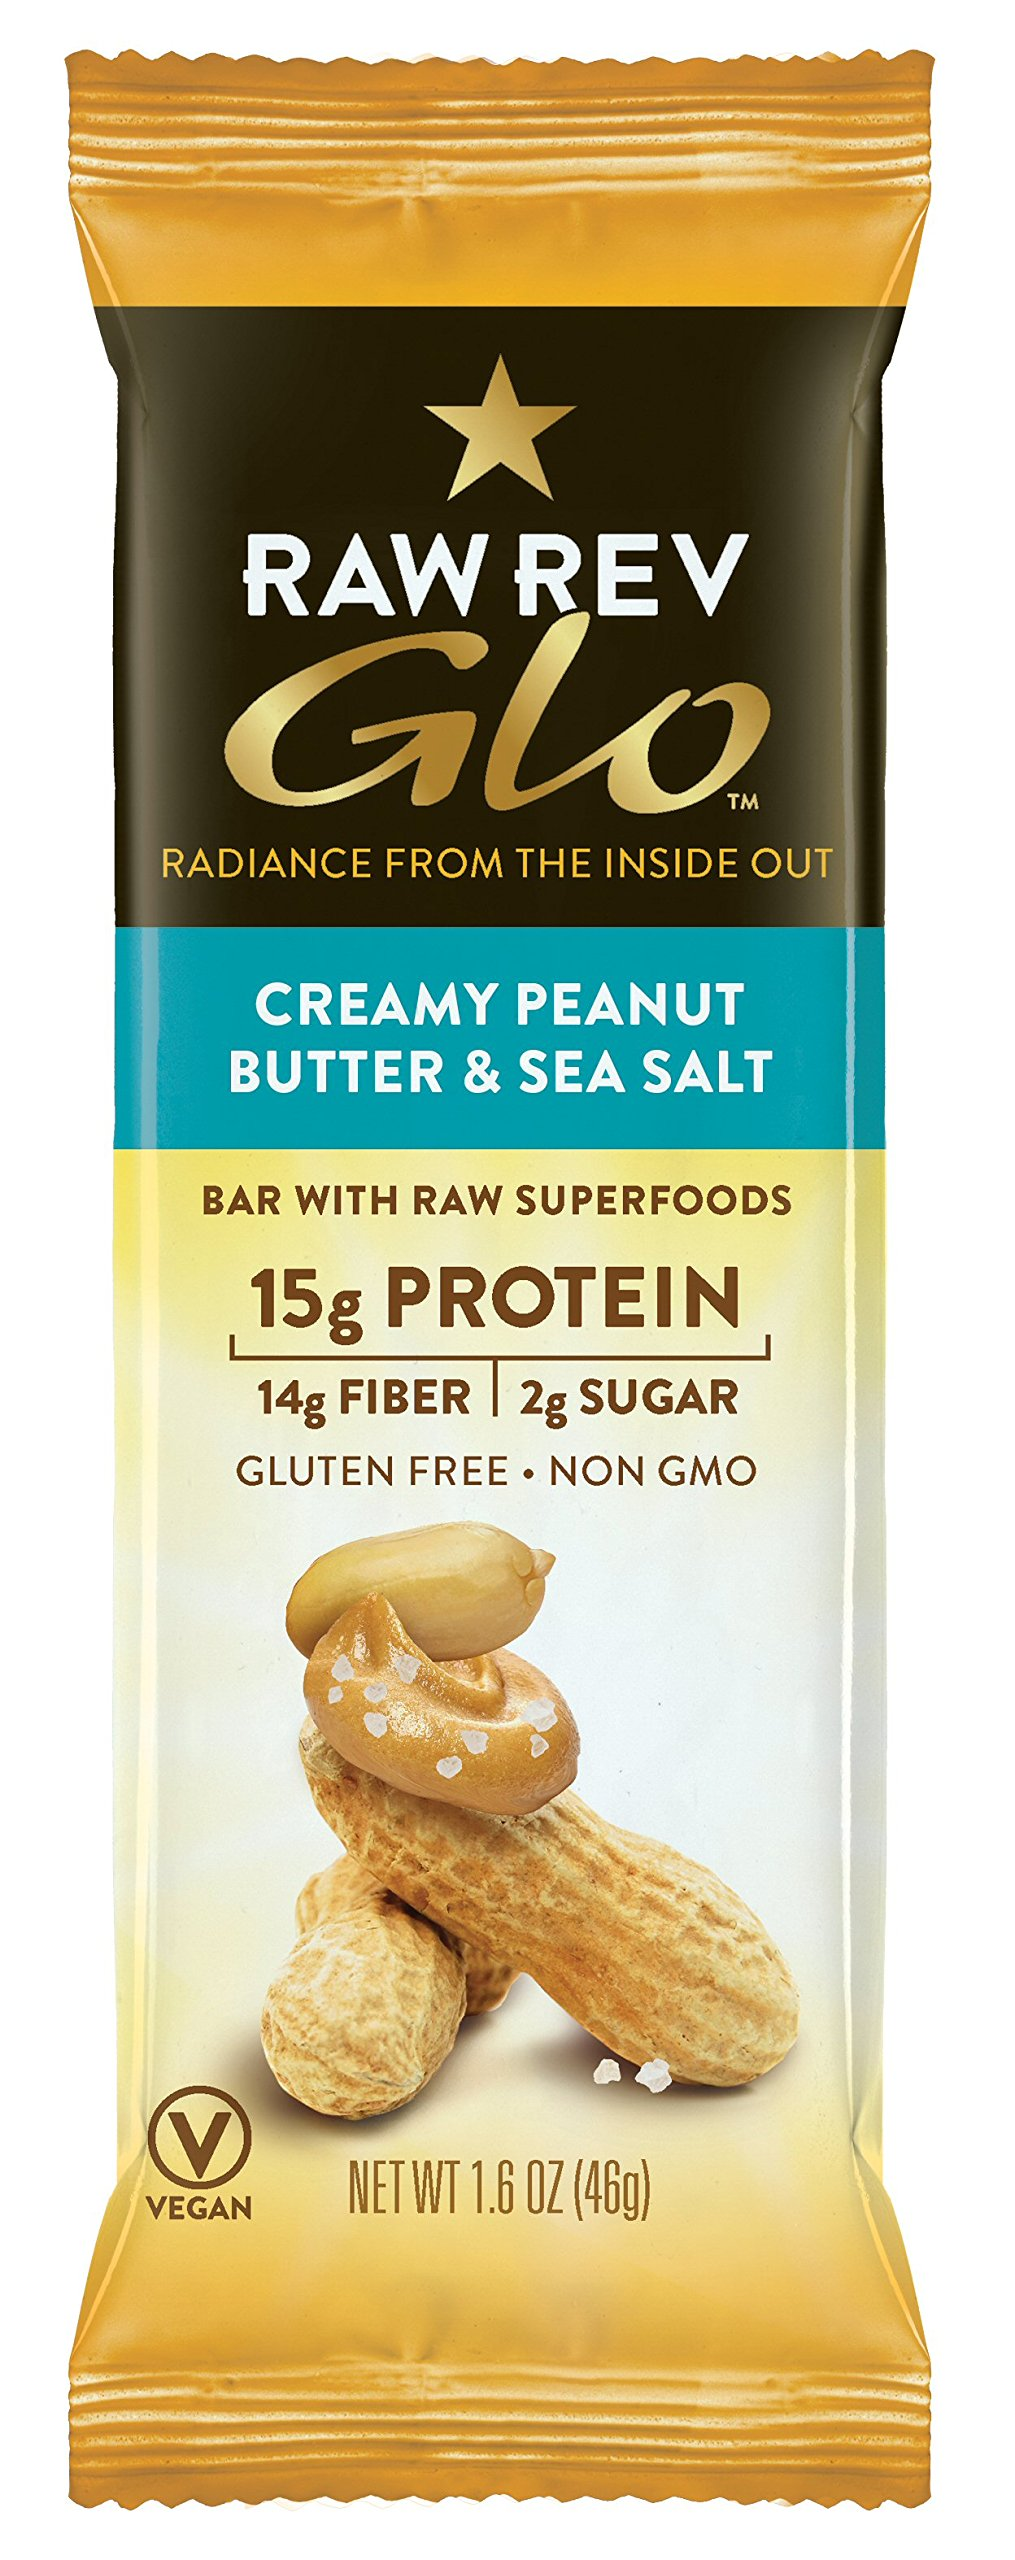 Raw Rev Glo Vegan, Gluten-Free Protein Bars - Creamy Peanut Butter & Sea Salt 1.6 ounce (Pack of 12)